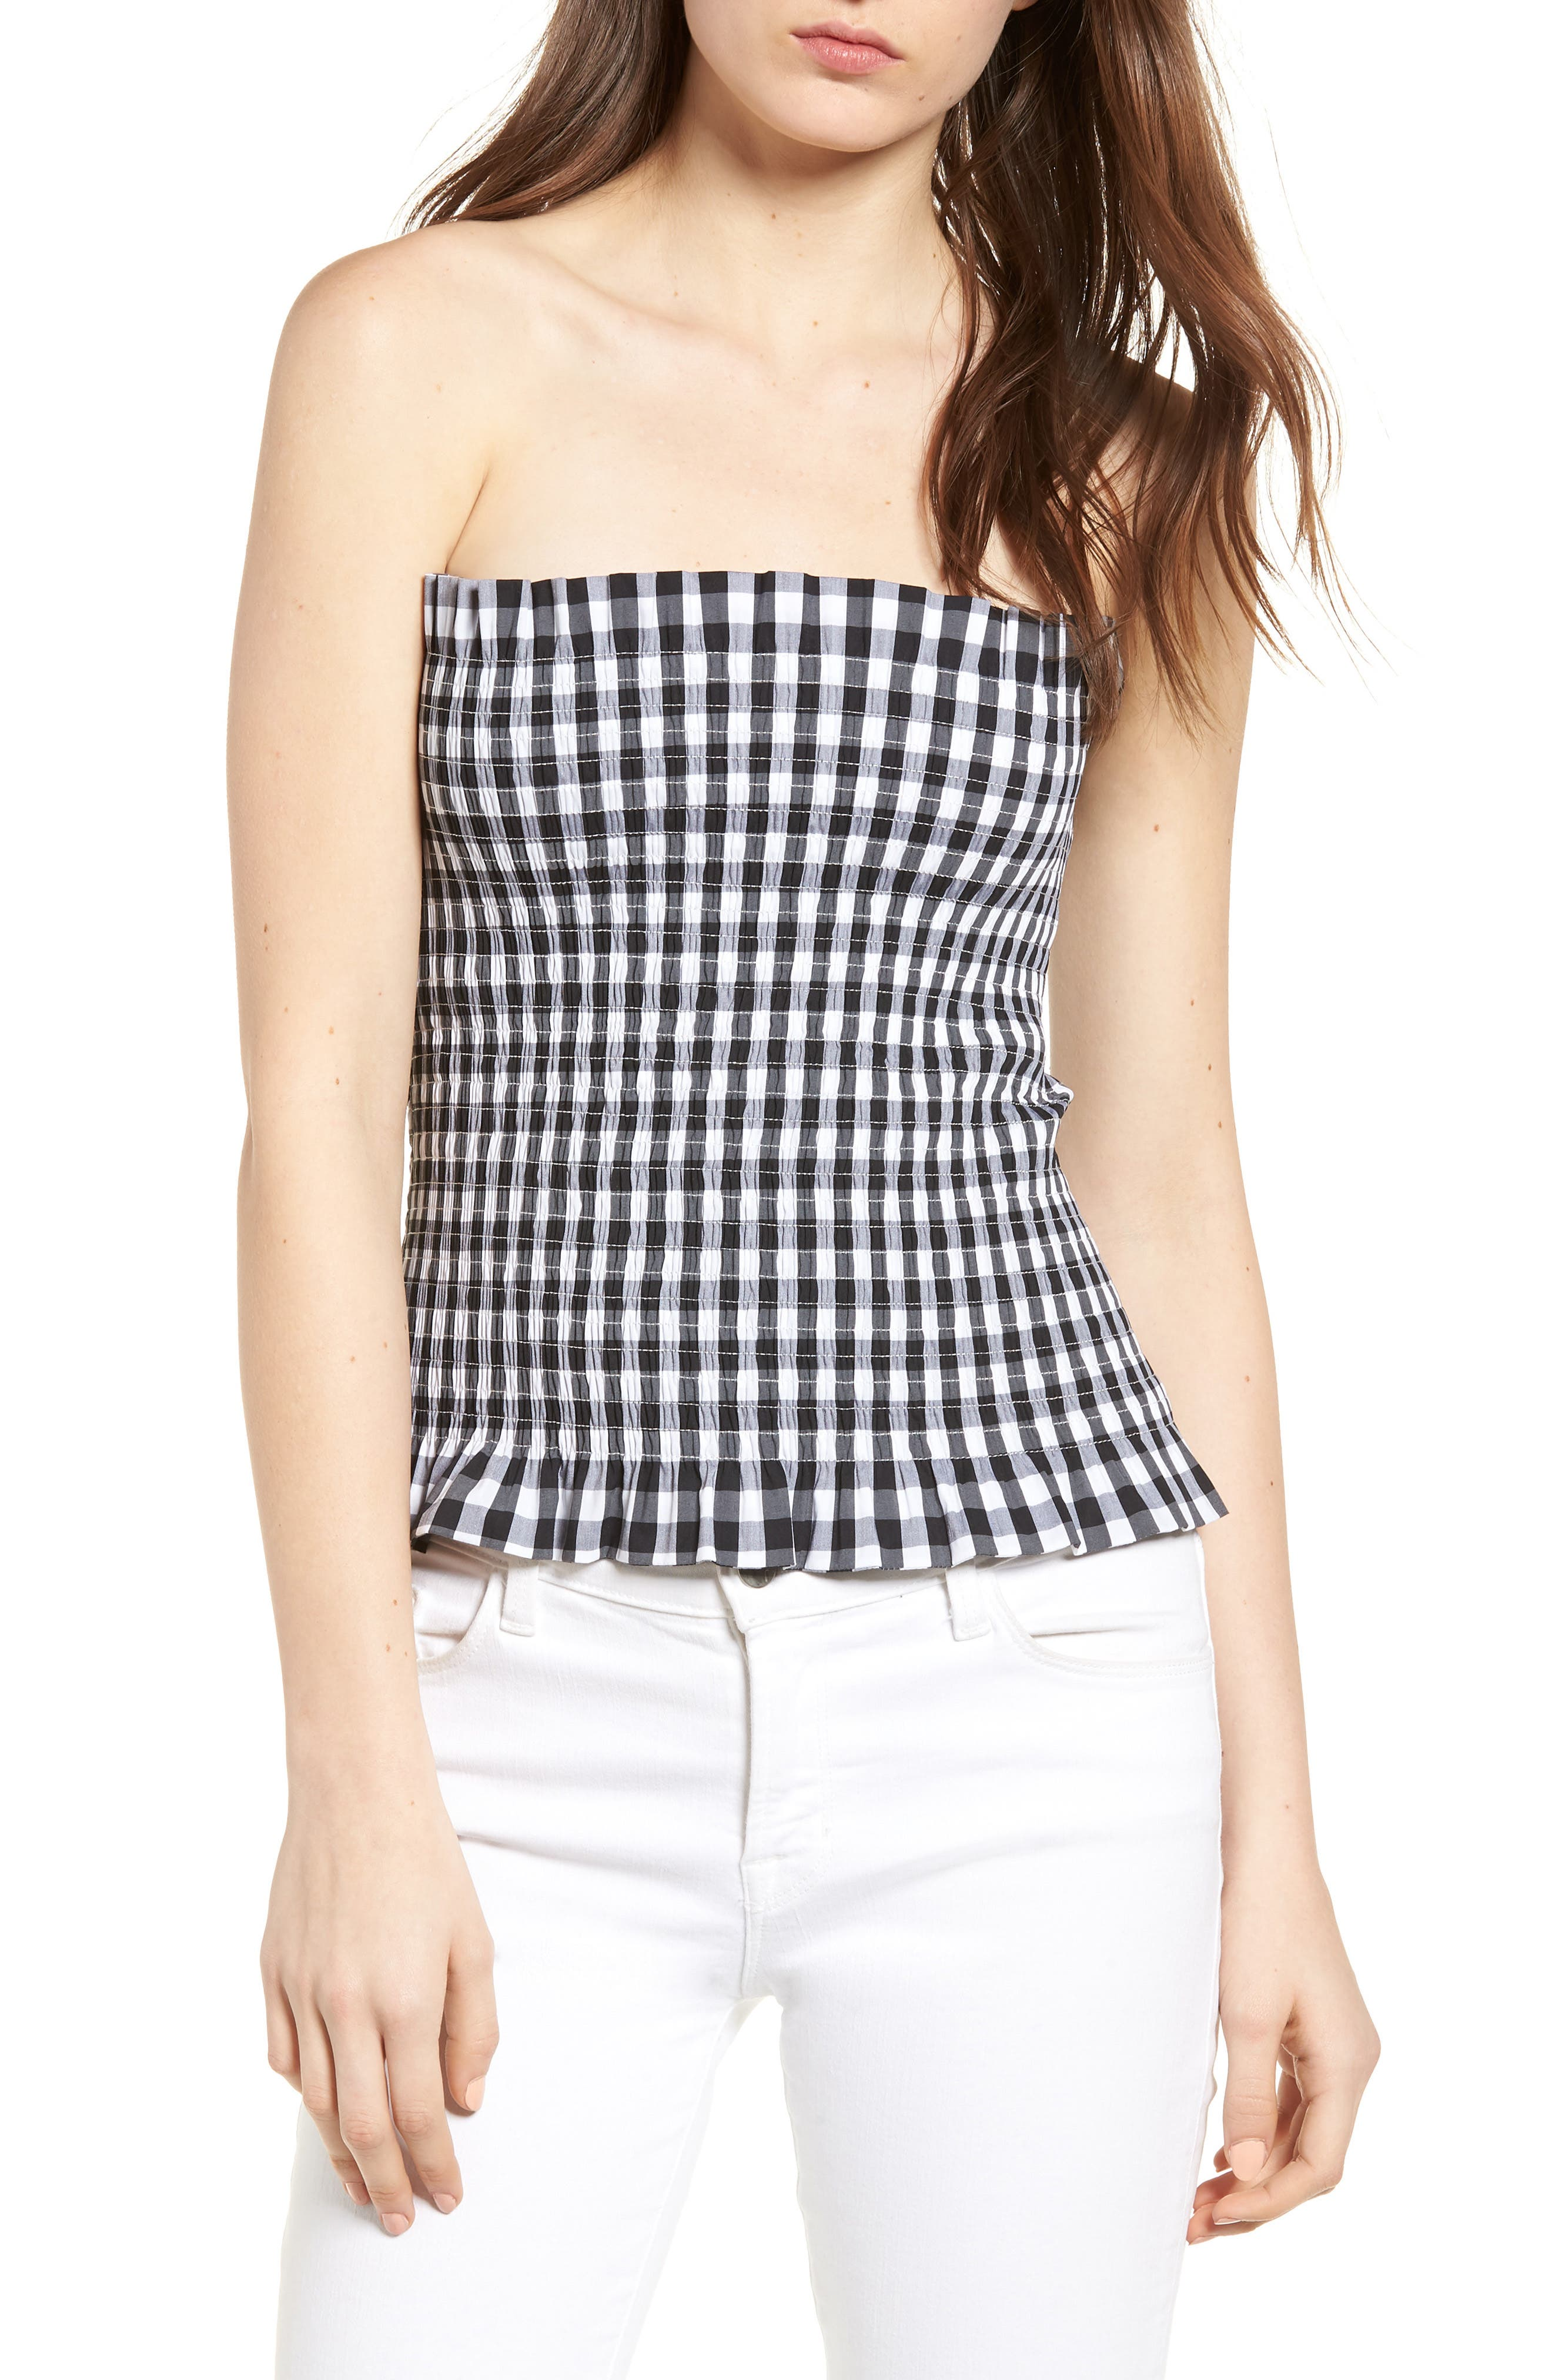 Bishop + Young Gingham Tube Top,                         Main,                         color, Assorted